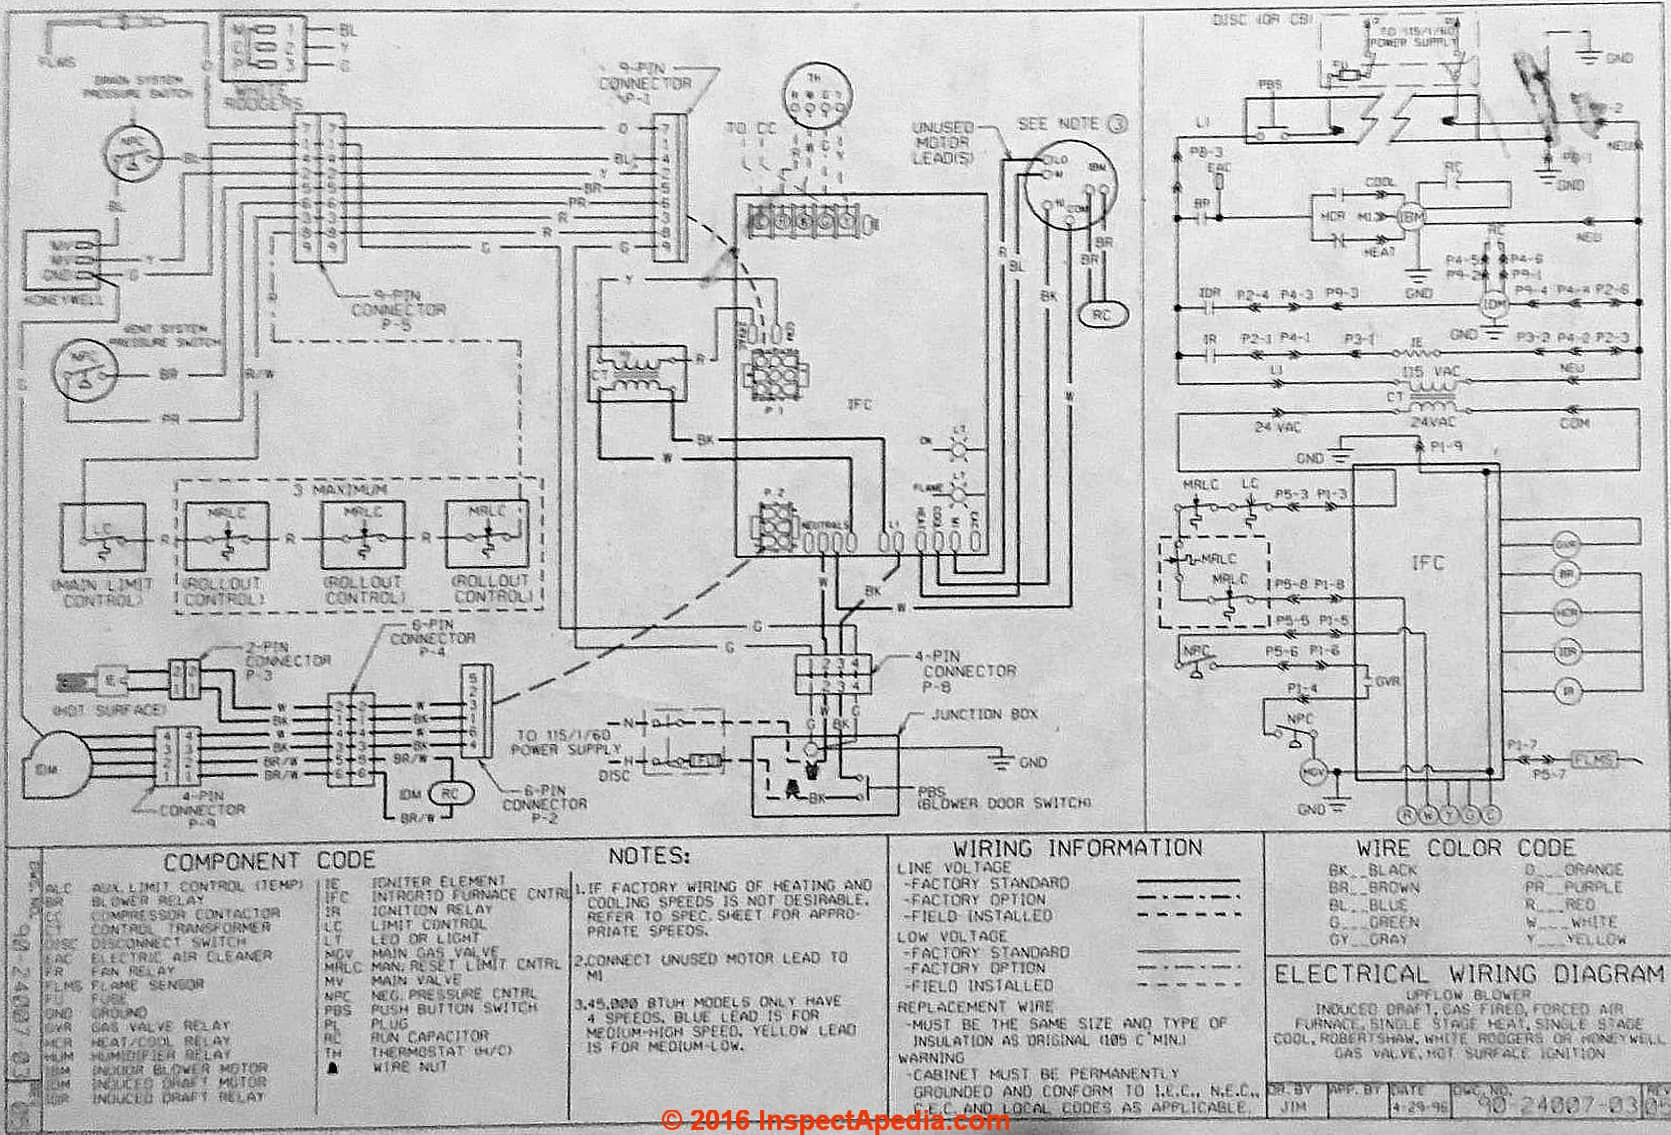 Rheem Heat Pump Air Handler Wiring Diagram Solidfonts – Rheem Heat Pump Wiring Diagram